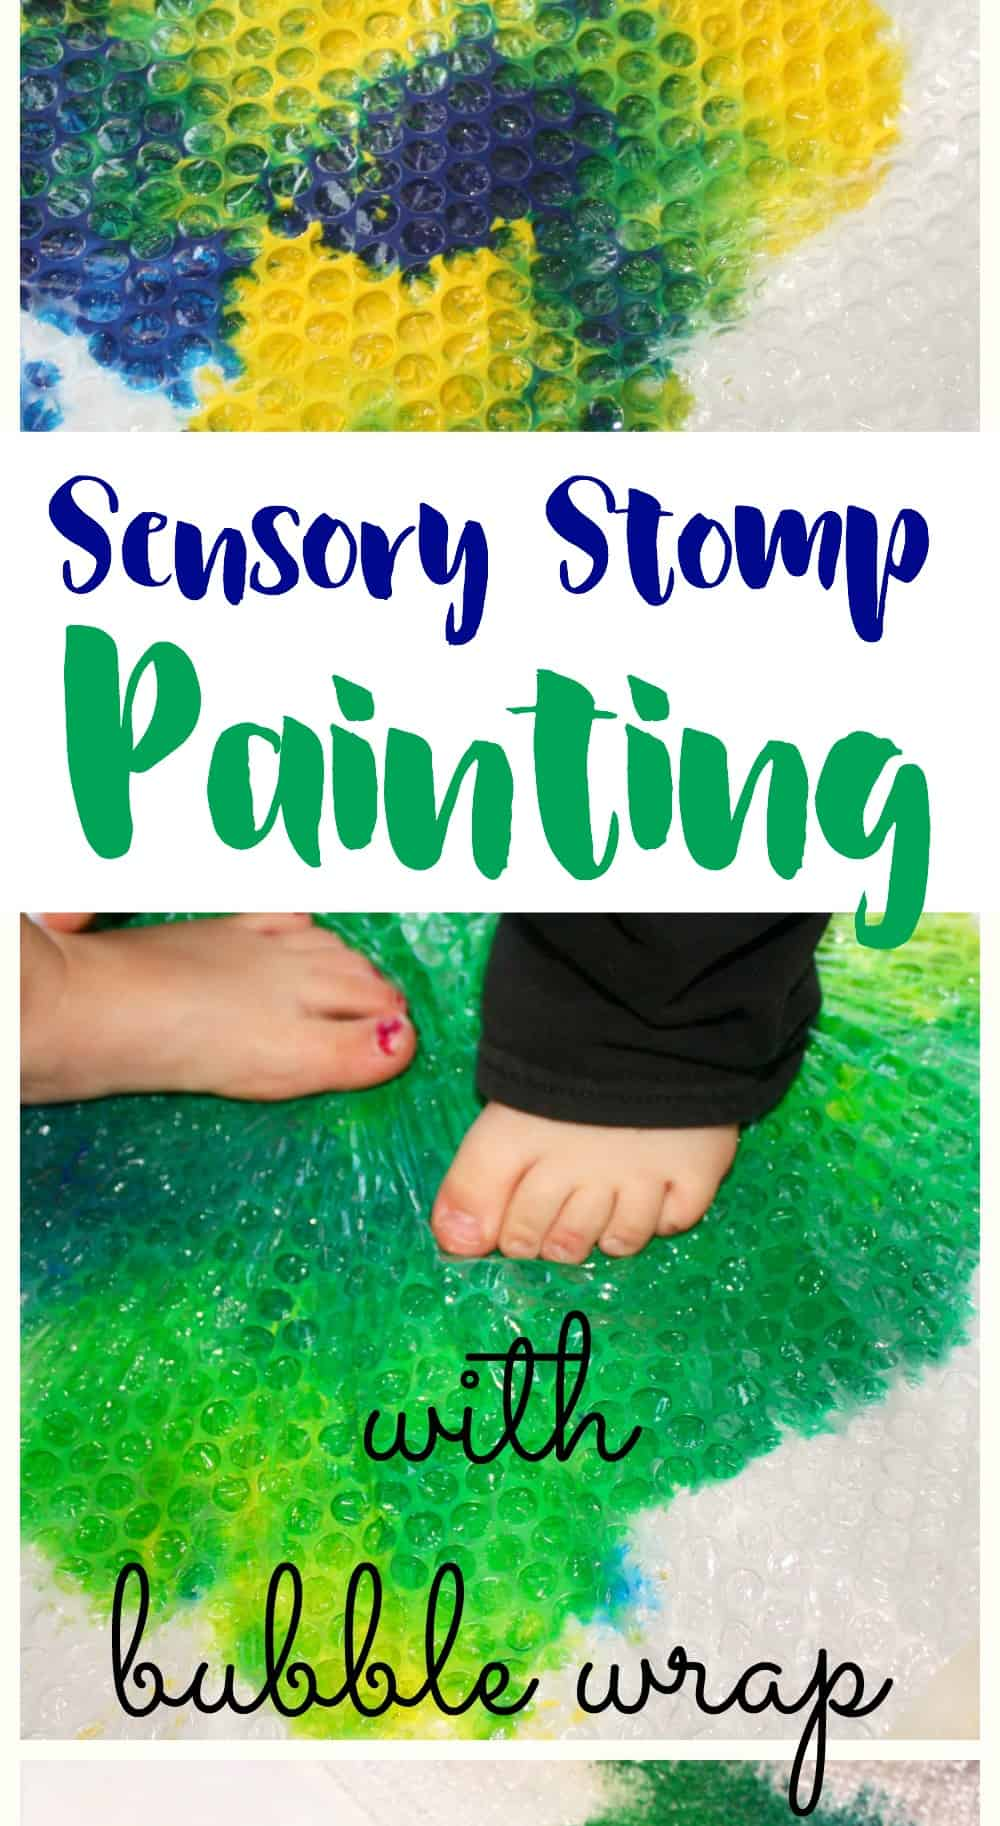 Sensory stomp paint new pin